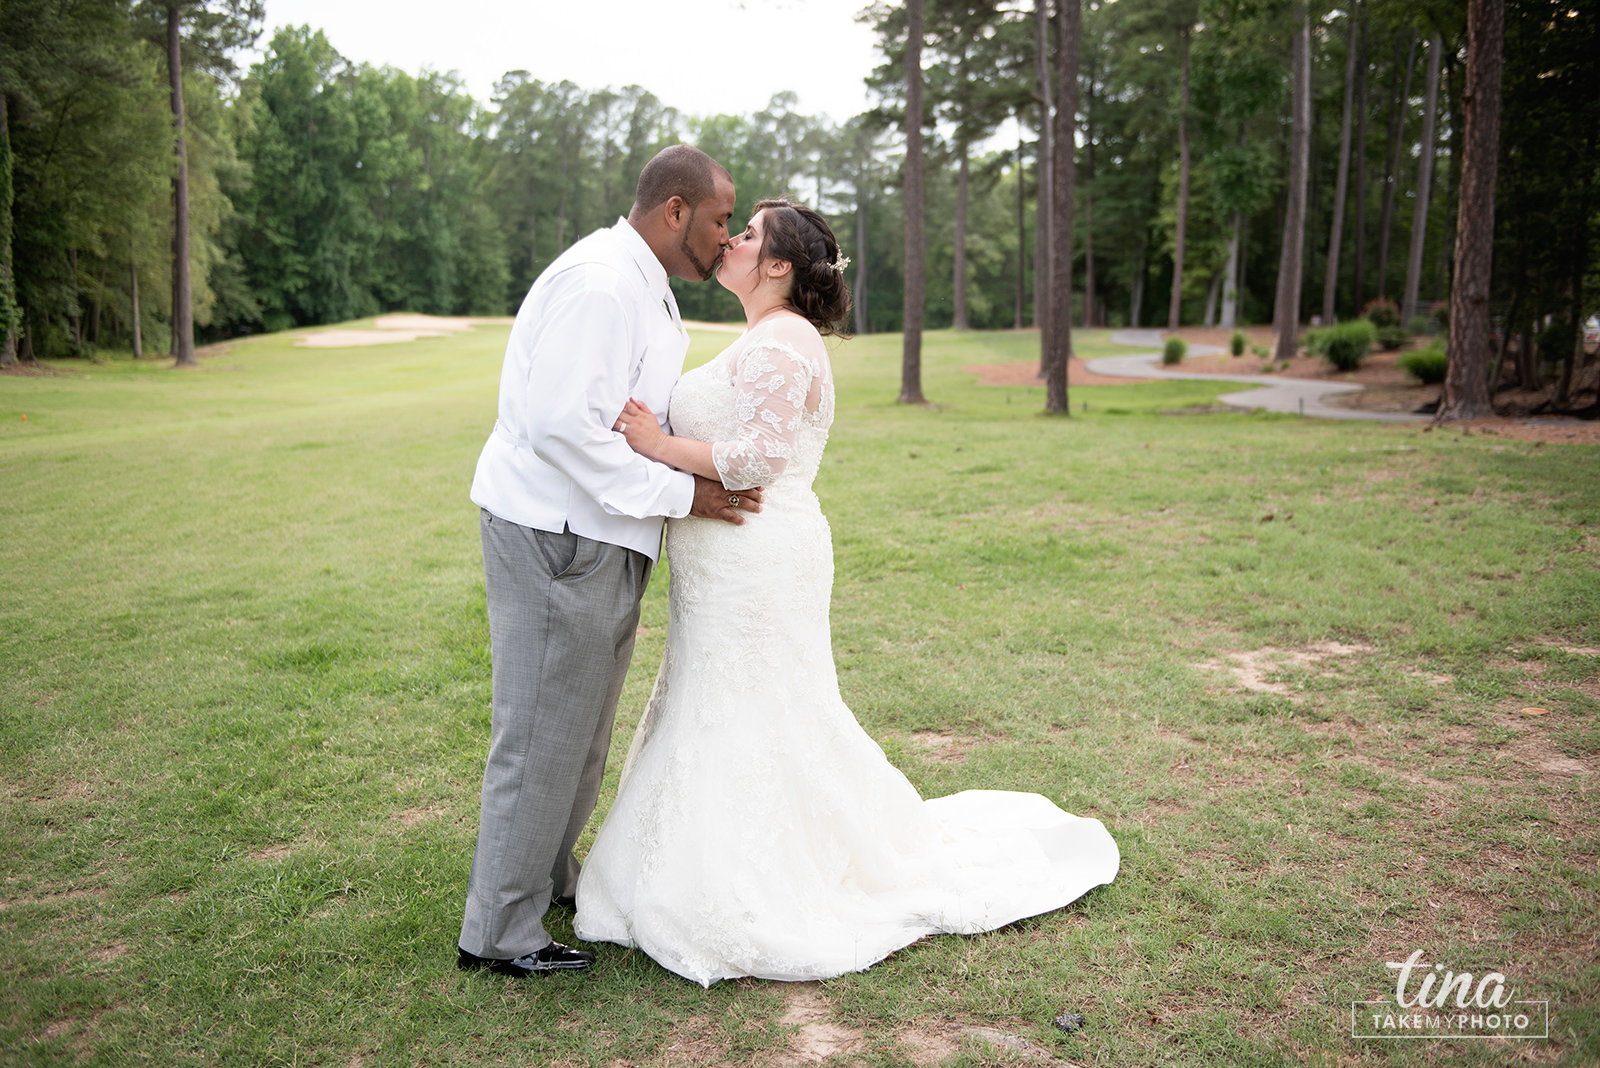 wedding-photographer-bride-groom-portrait-summer-brandermill-country-club-virginia-golf-course-rain